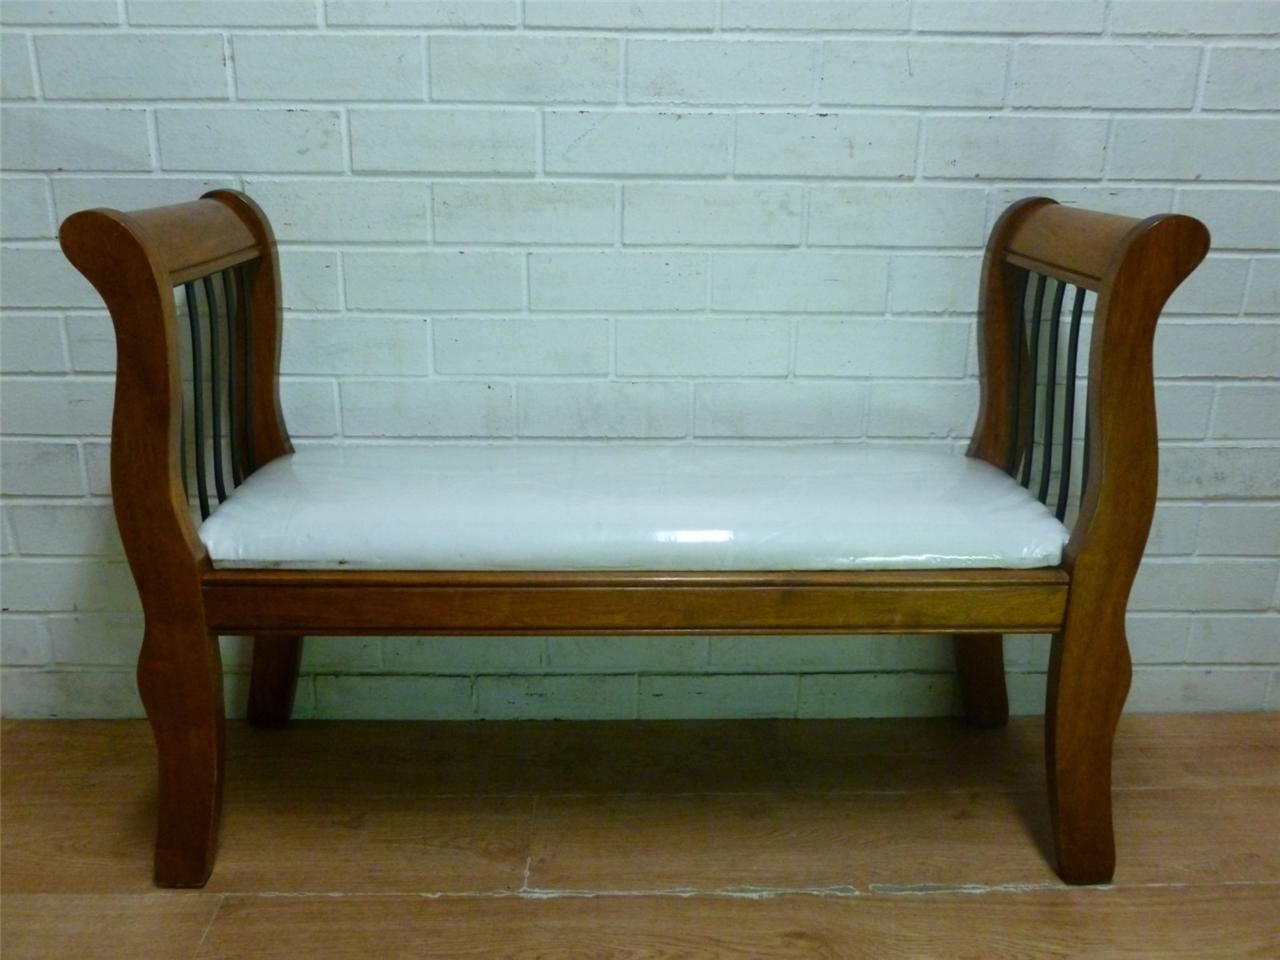 PERIOD STYLE SOLID WOOD BEDROOM BENCH SEAT CHAIR EBay. Full resolution‎  photo, nominally Width 1280 Height 960 pixels, photo with #34270C.